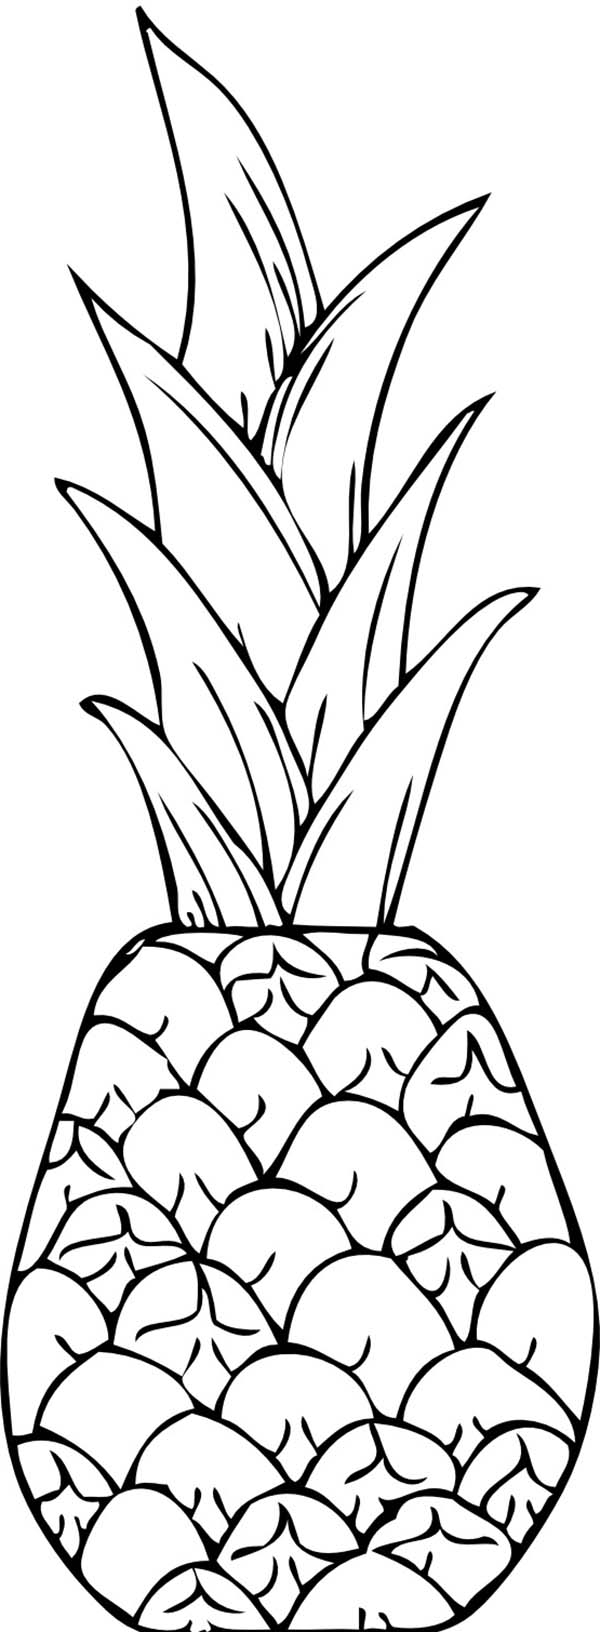 600x1632 Best Of Tropical Fruit Coloring Pages Collection Printable